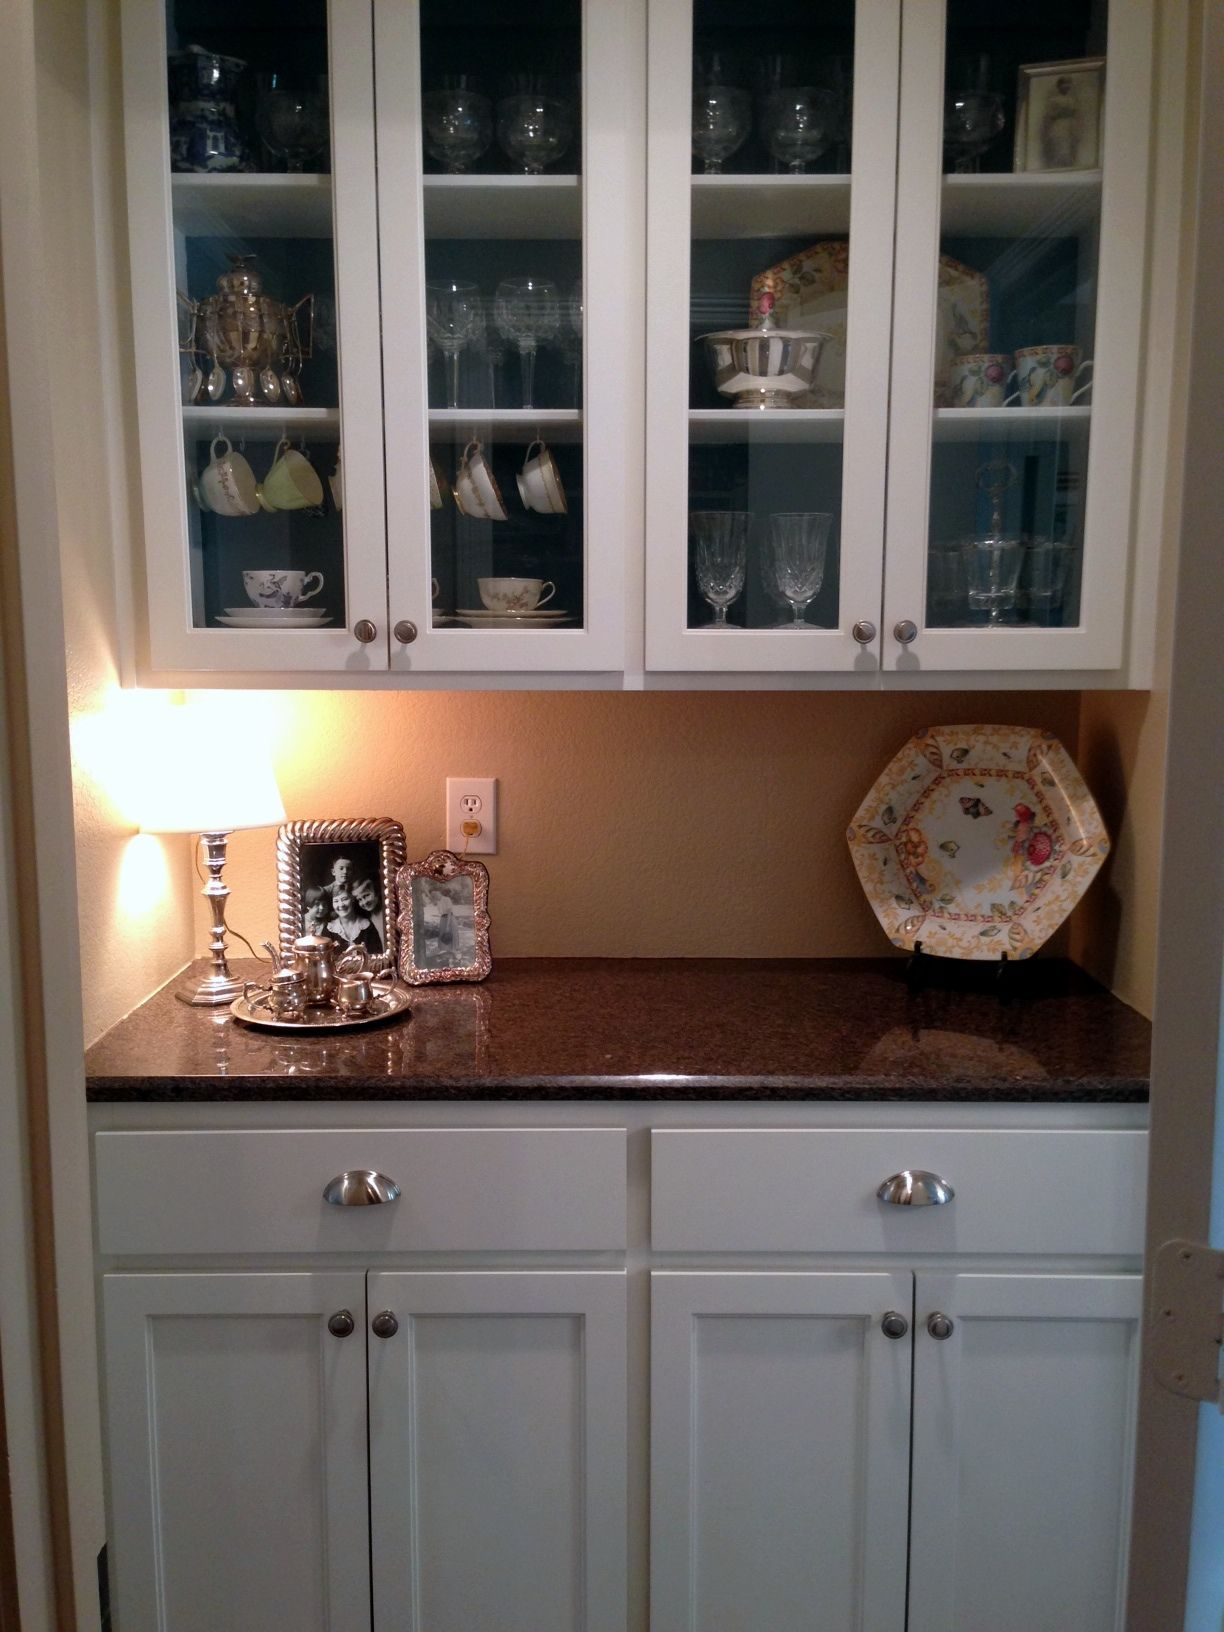 How To Add A Pantry Your Kitchen Rattan Chairs Transform Small Closet Into Useable Space Make It